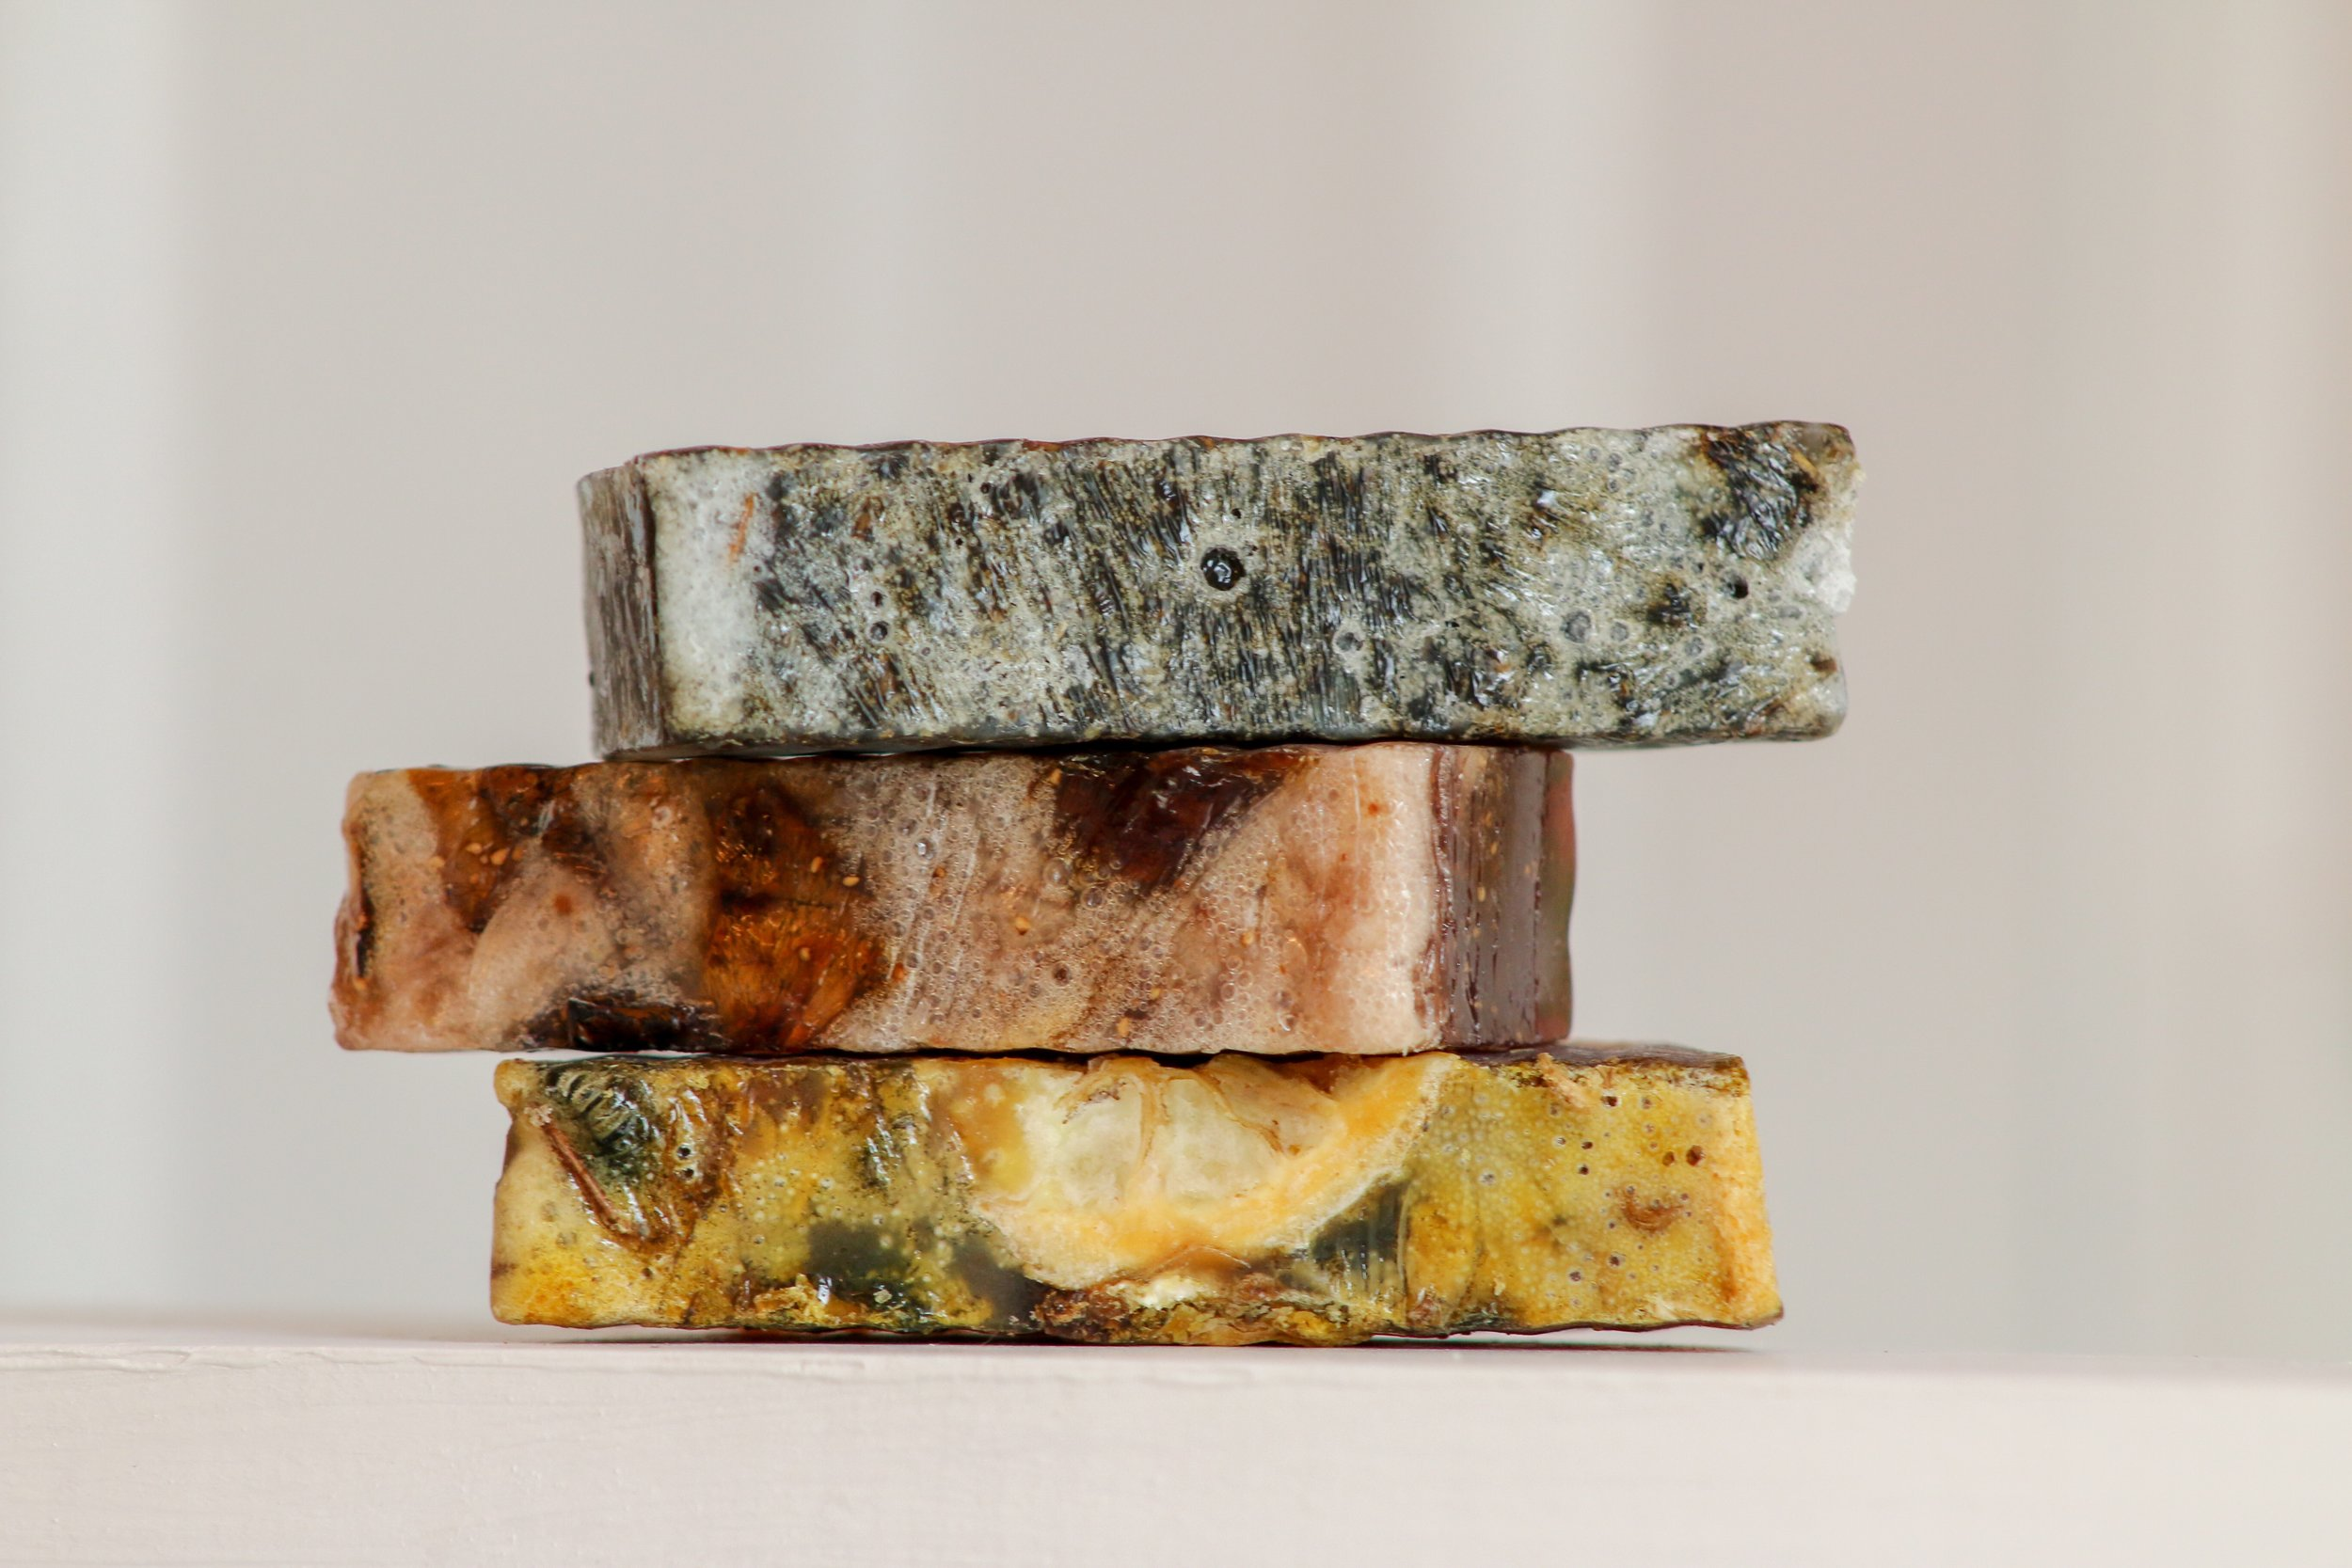 discover our organic soaps - Homemade with love.